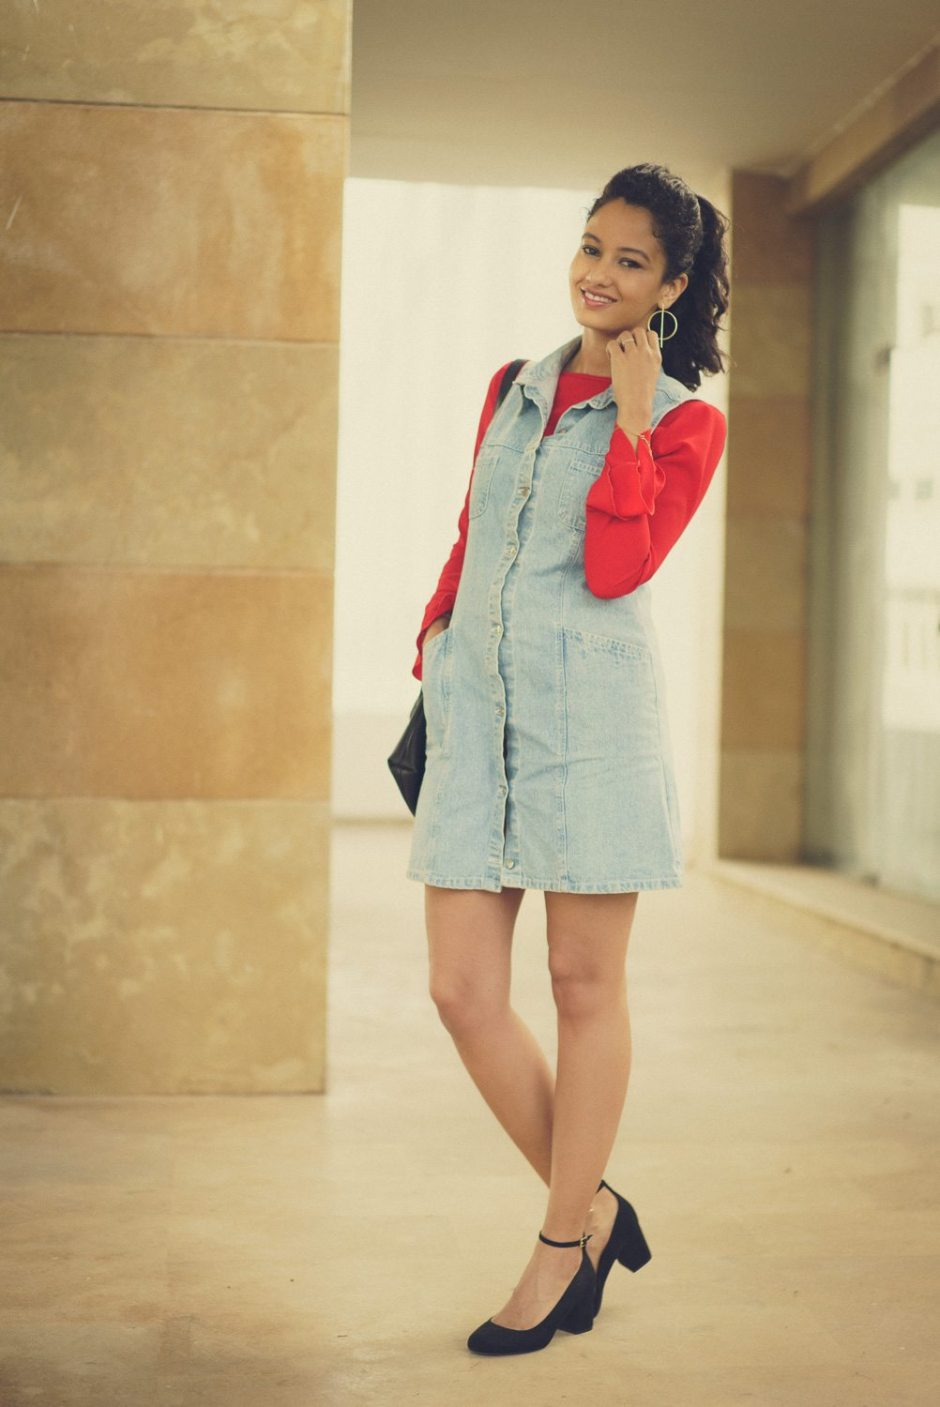 denim dress and red ruffles